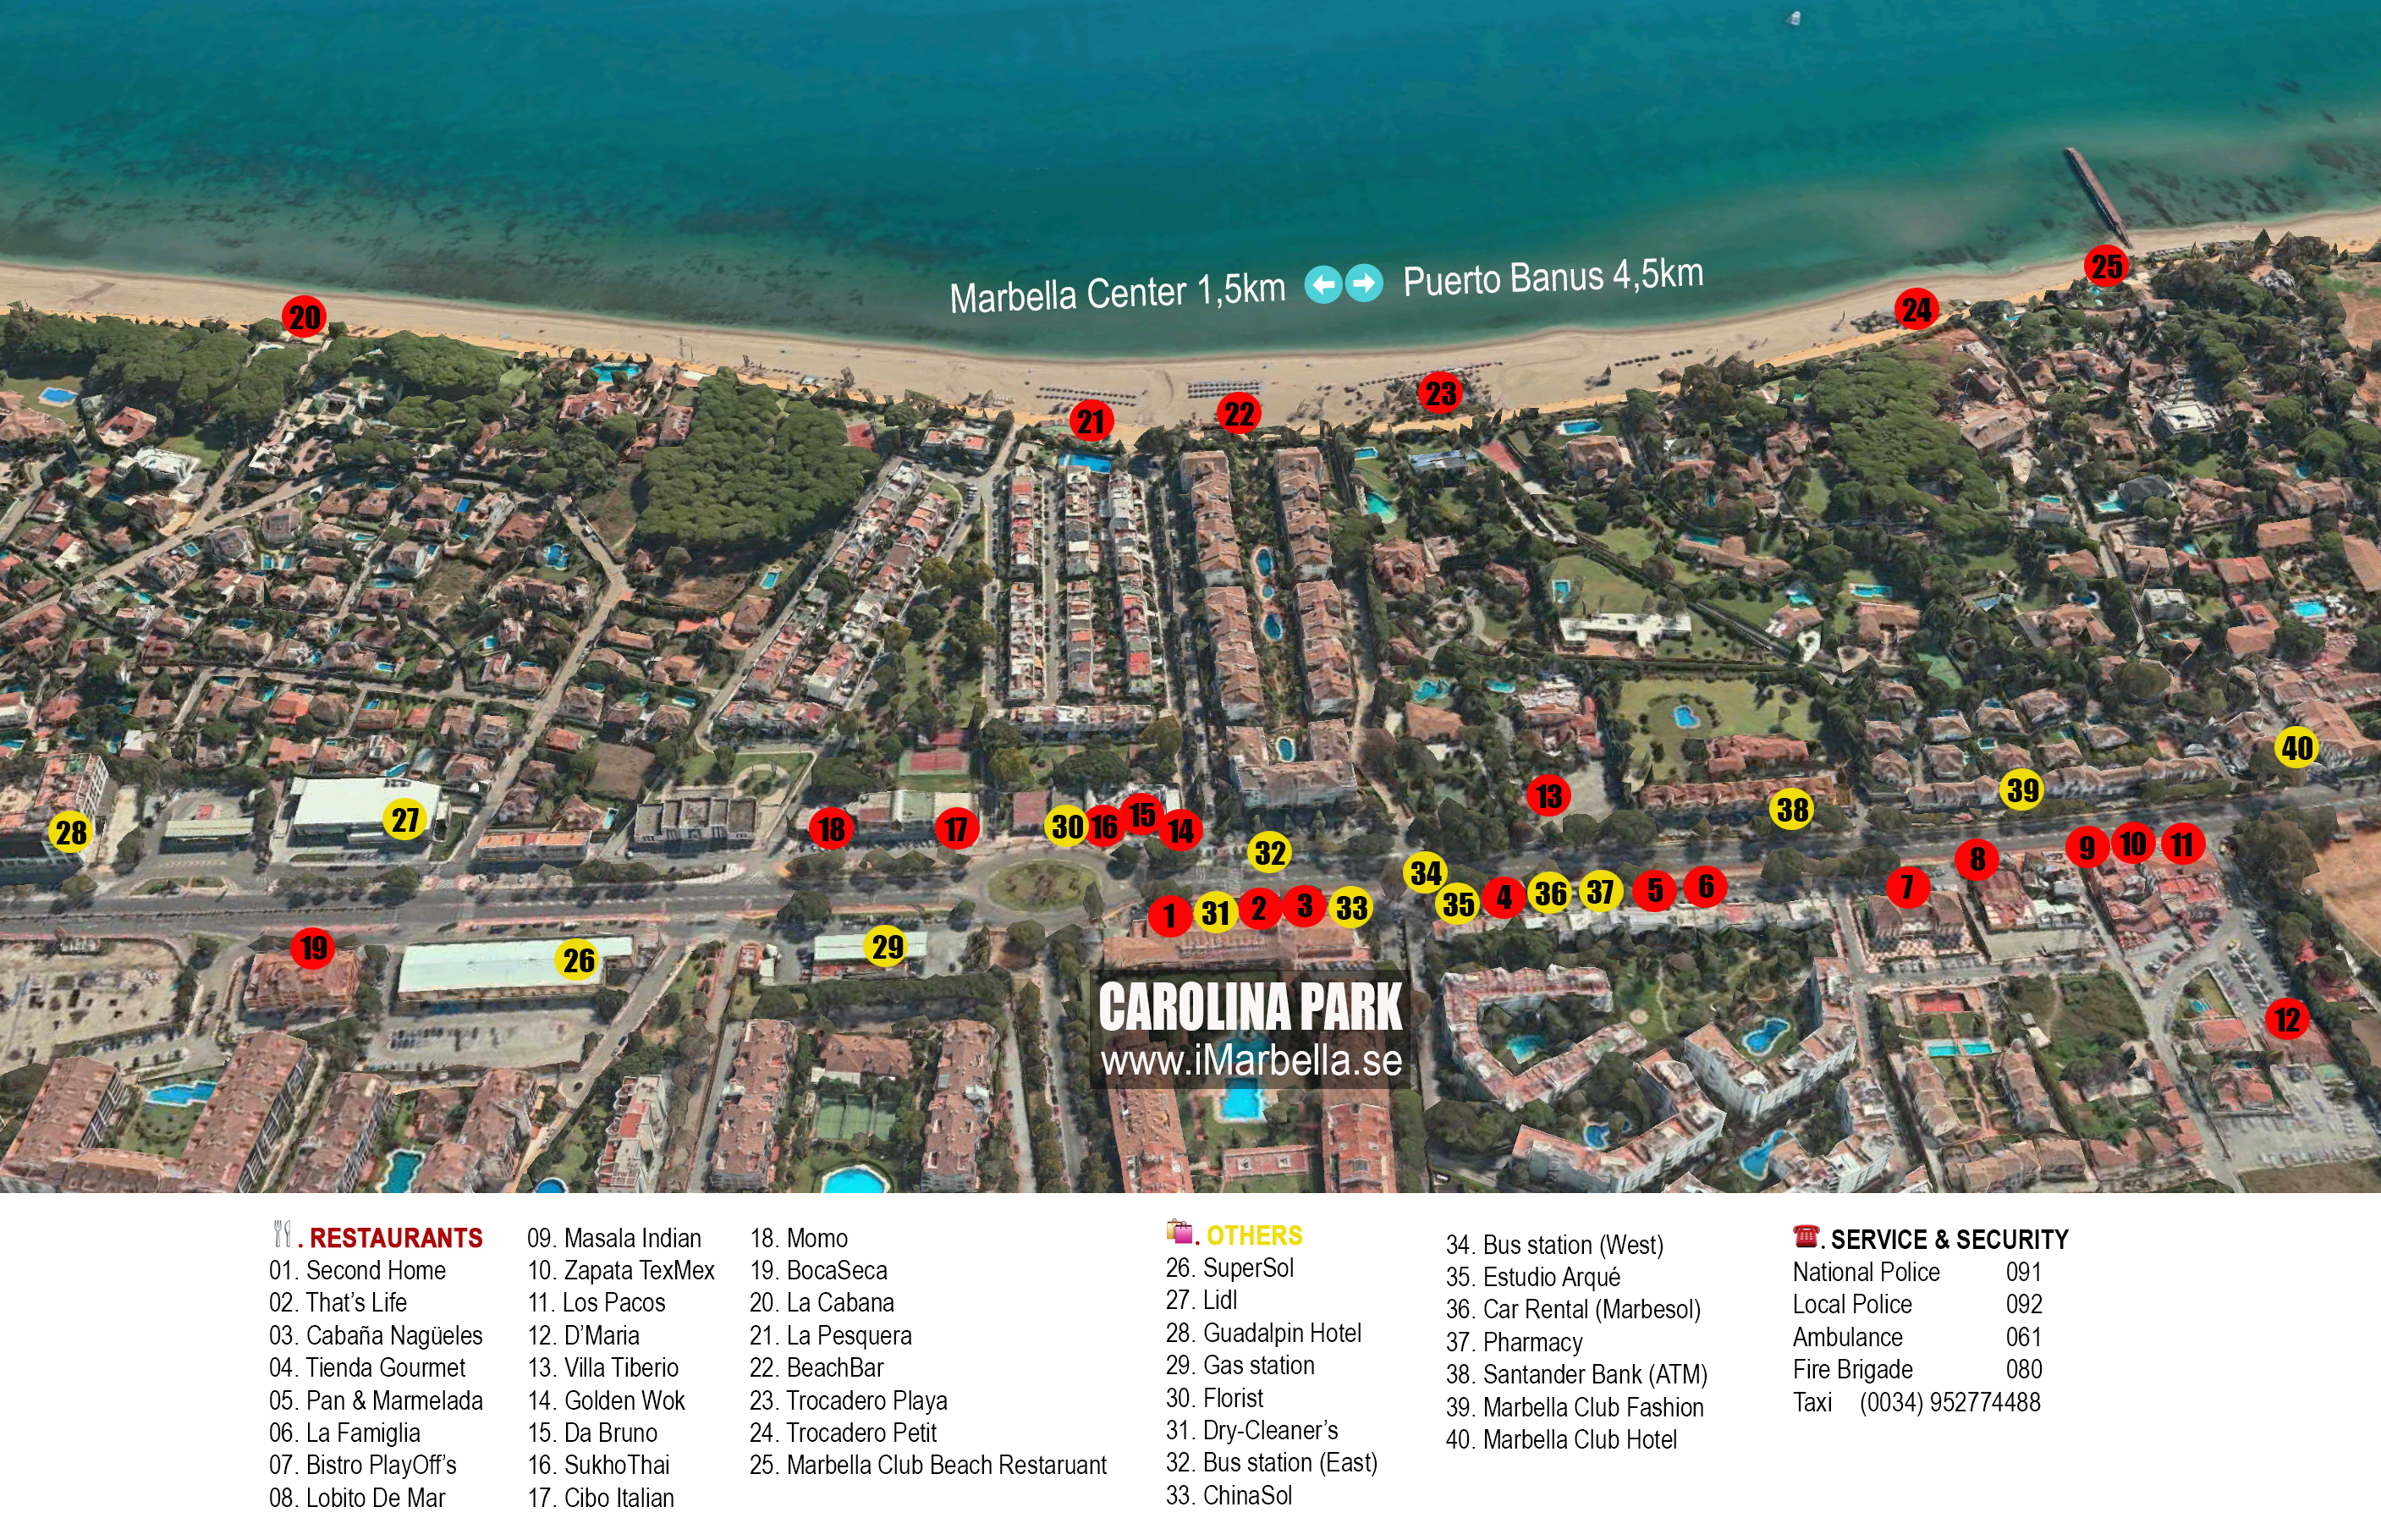 Marbella Map with Points of Interest